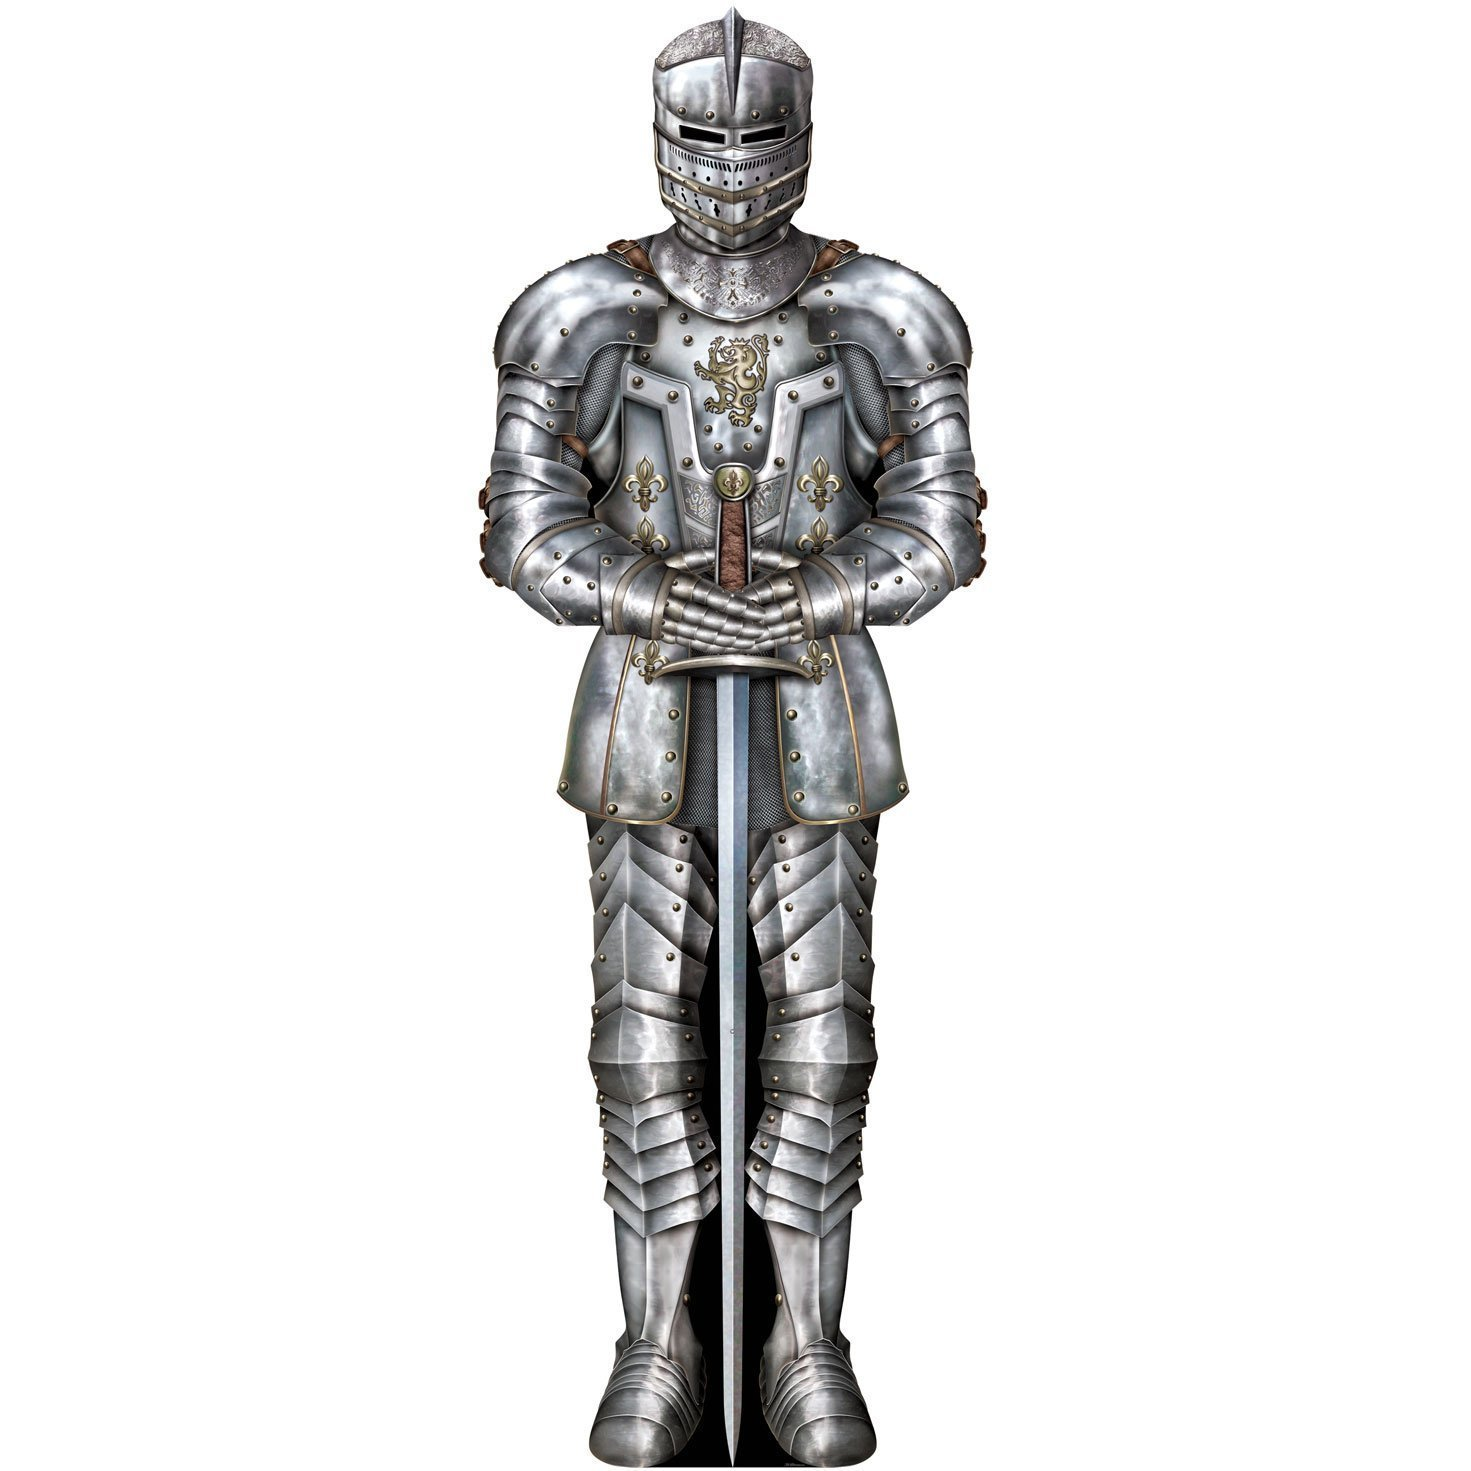 Knight Suit Of Armor~ Full Suit Of Armor , Buy Full Body Armor  Suit,Decorative Suit Of Armor,Full Body Armor For Sale Product on  Alibaba.com